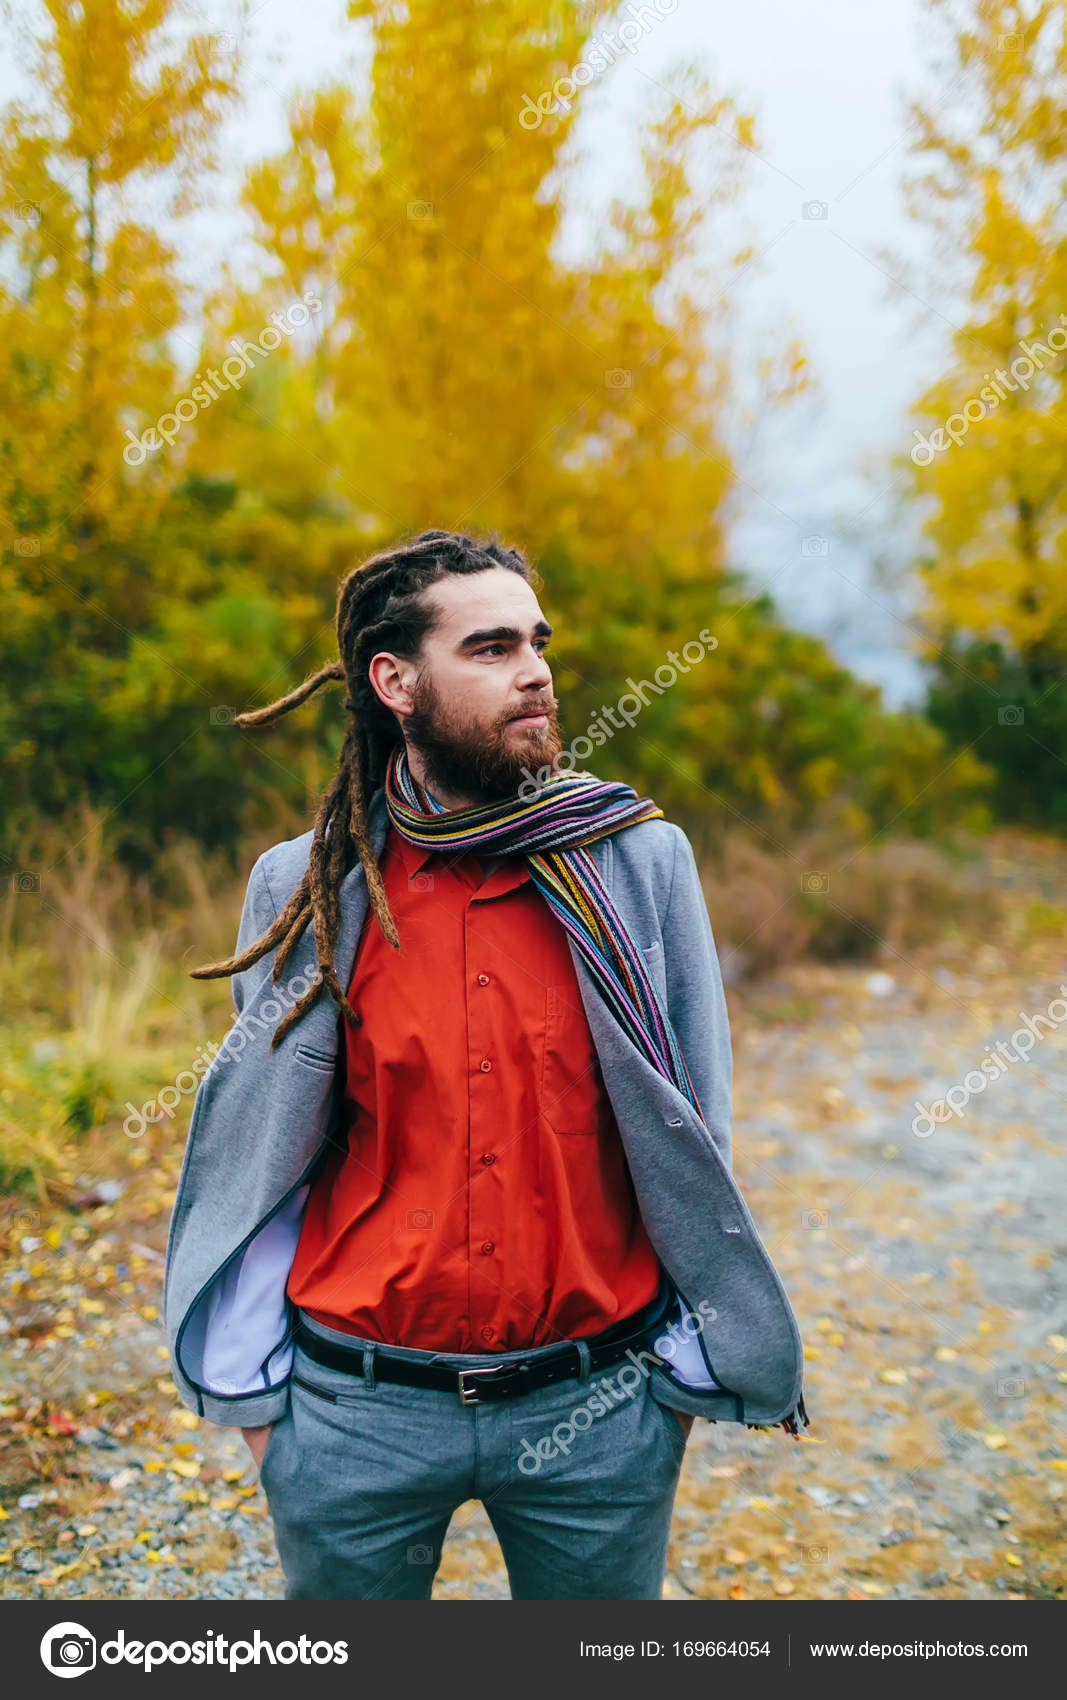 Hipster  A stylish man with dreadlocks and beard in a red